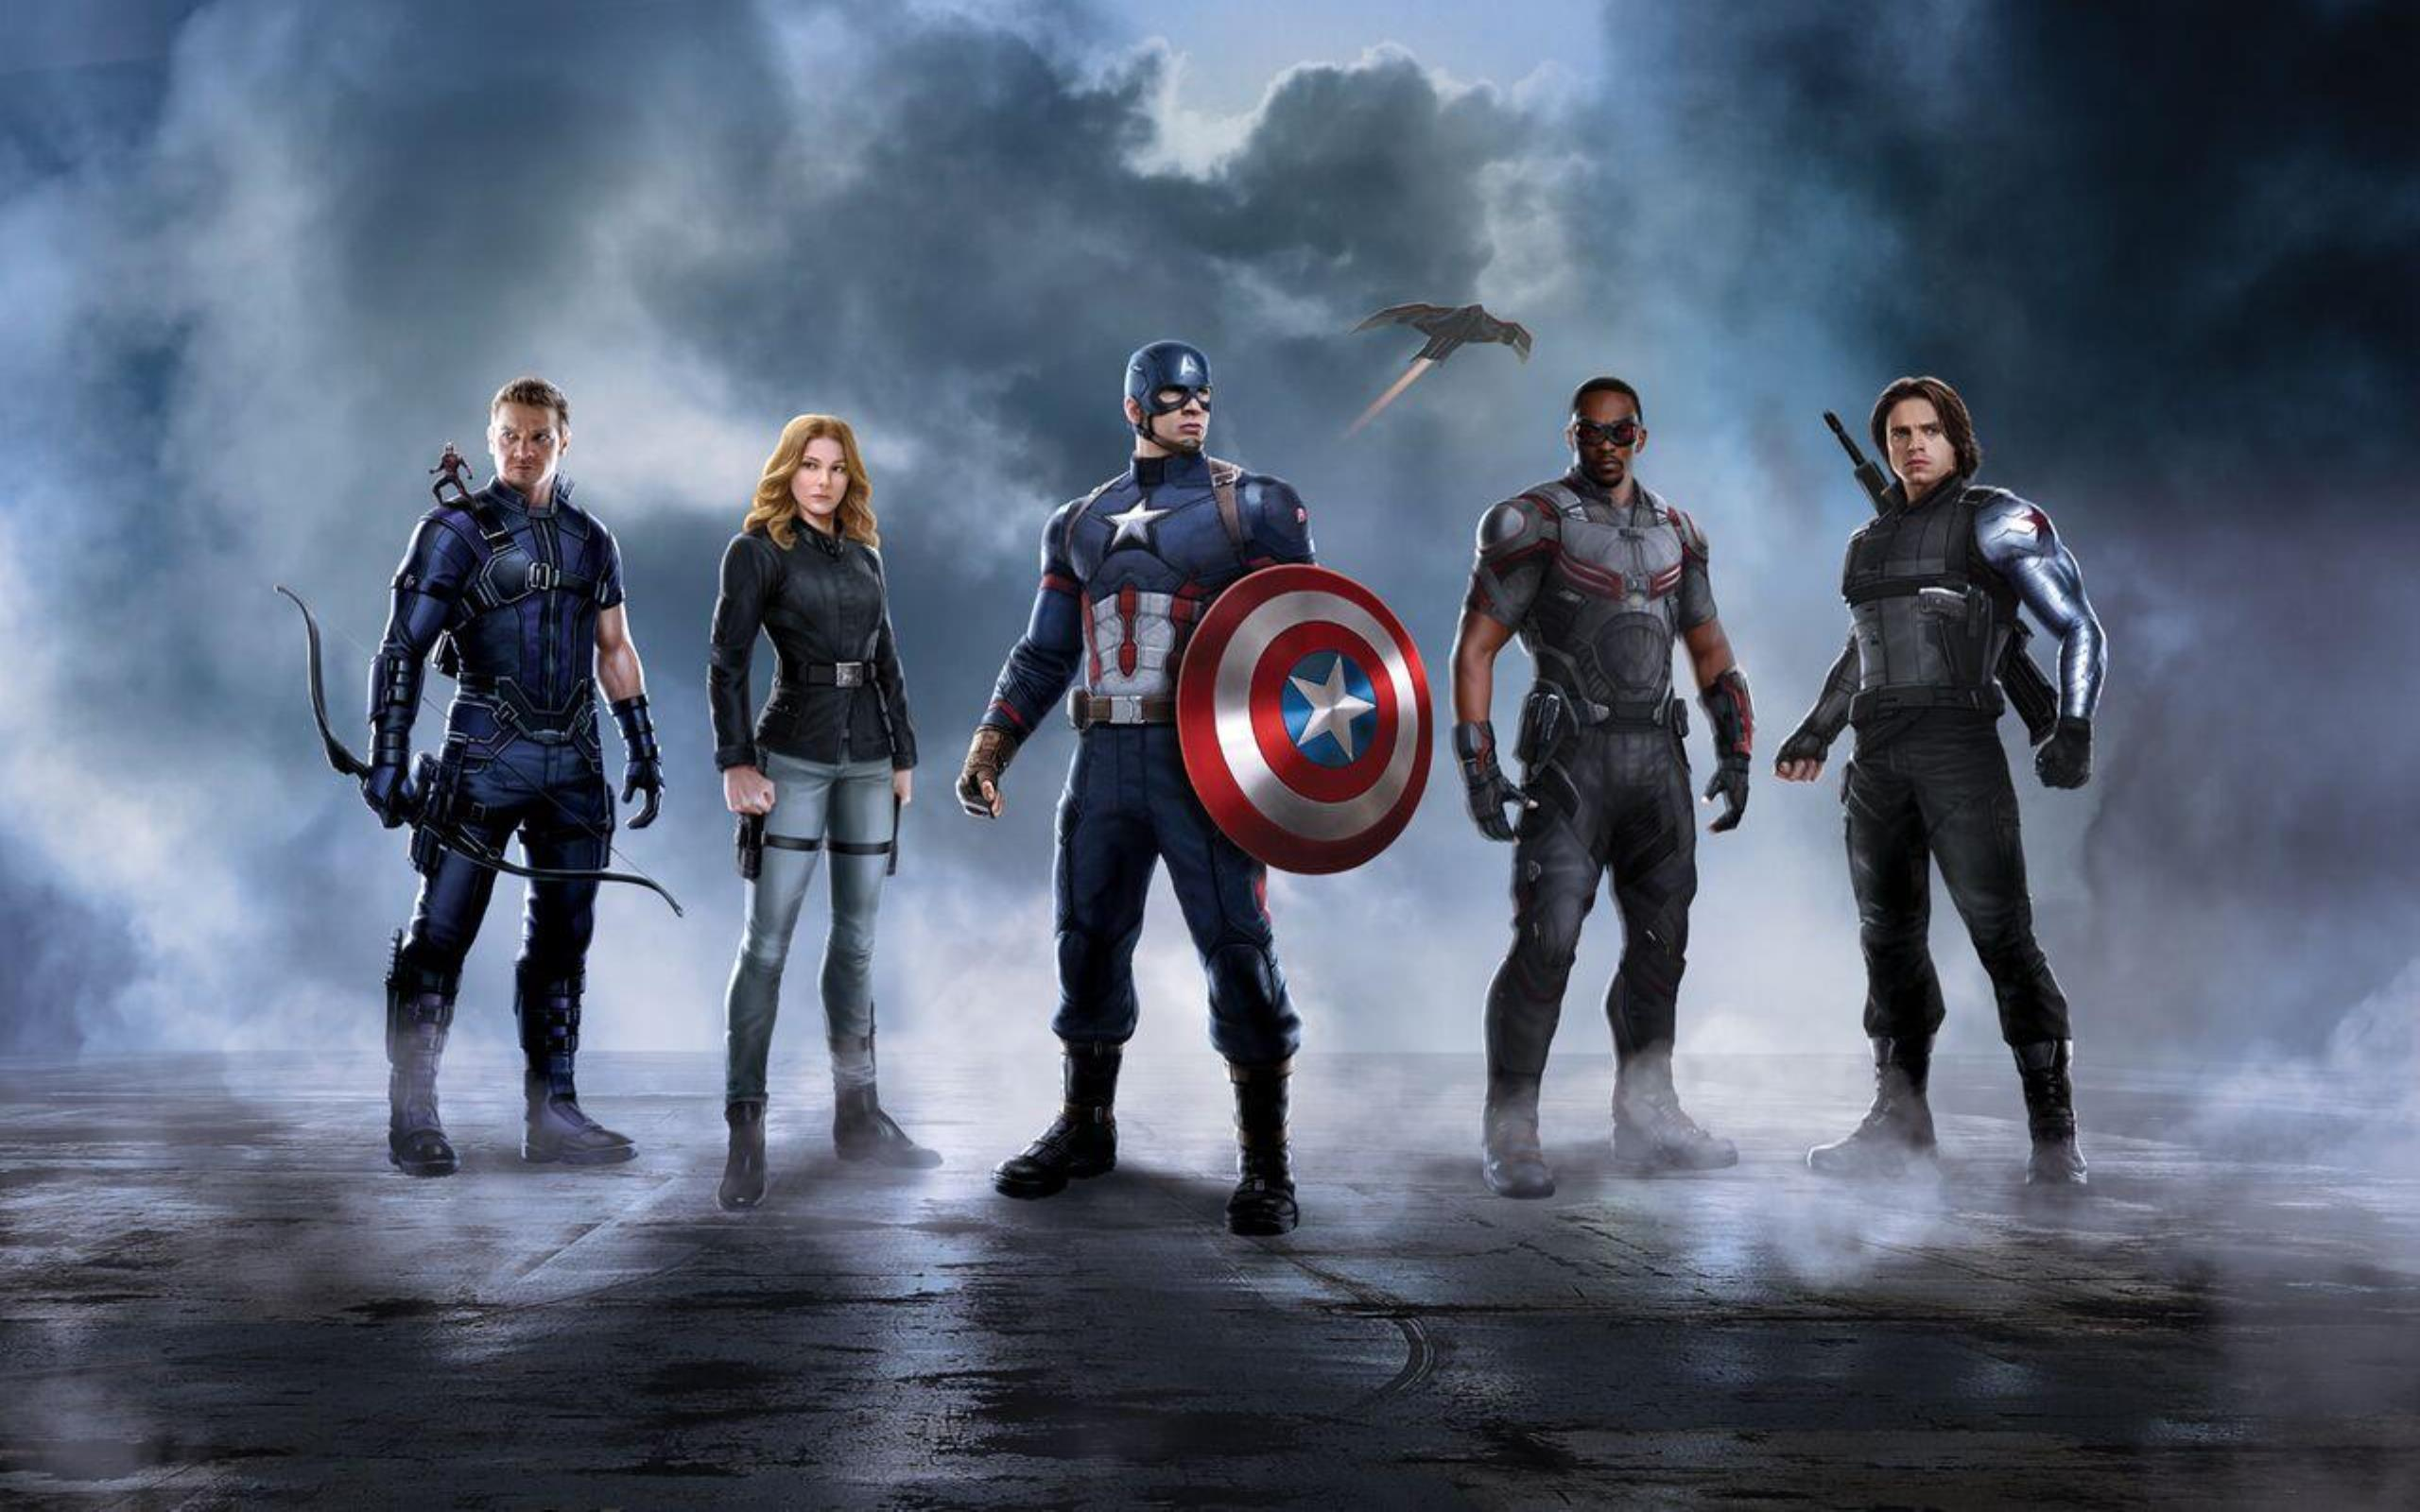 Captain America Civil War wallpaper images